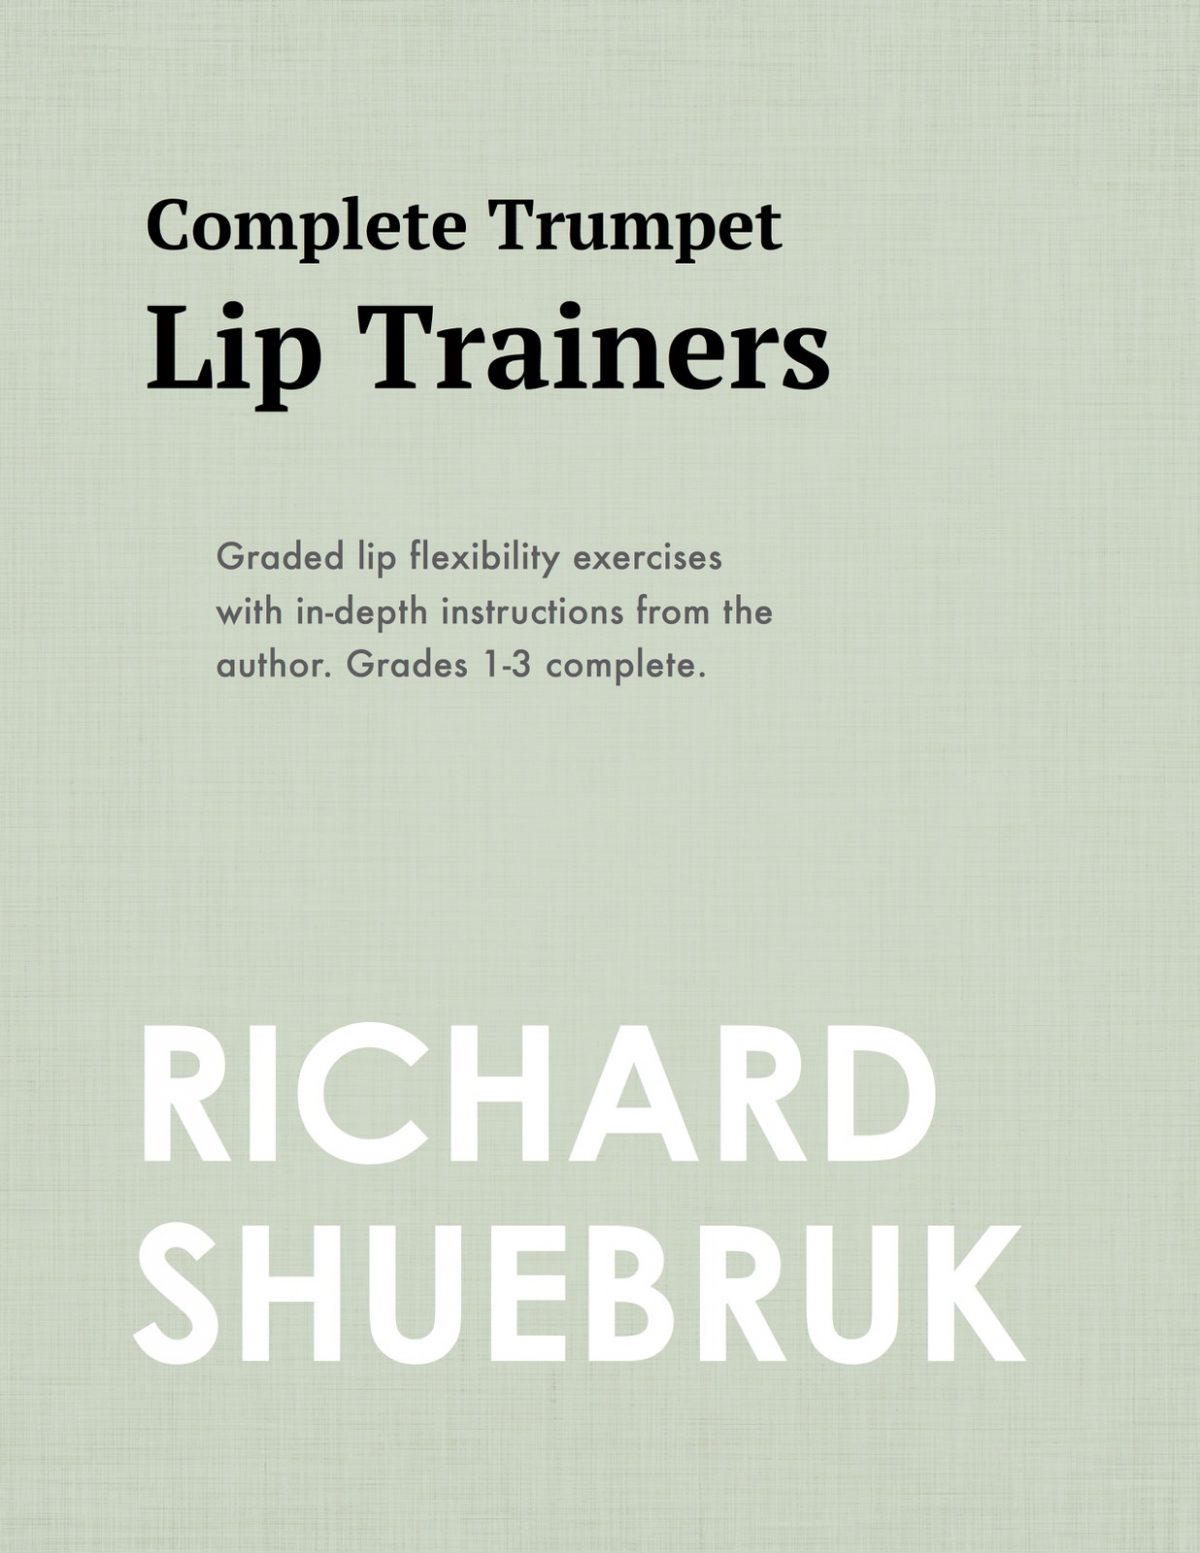 Shuebruk, Lip Trainers for Trumpet-p01